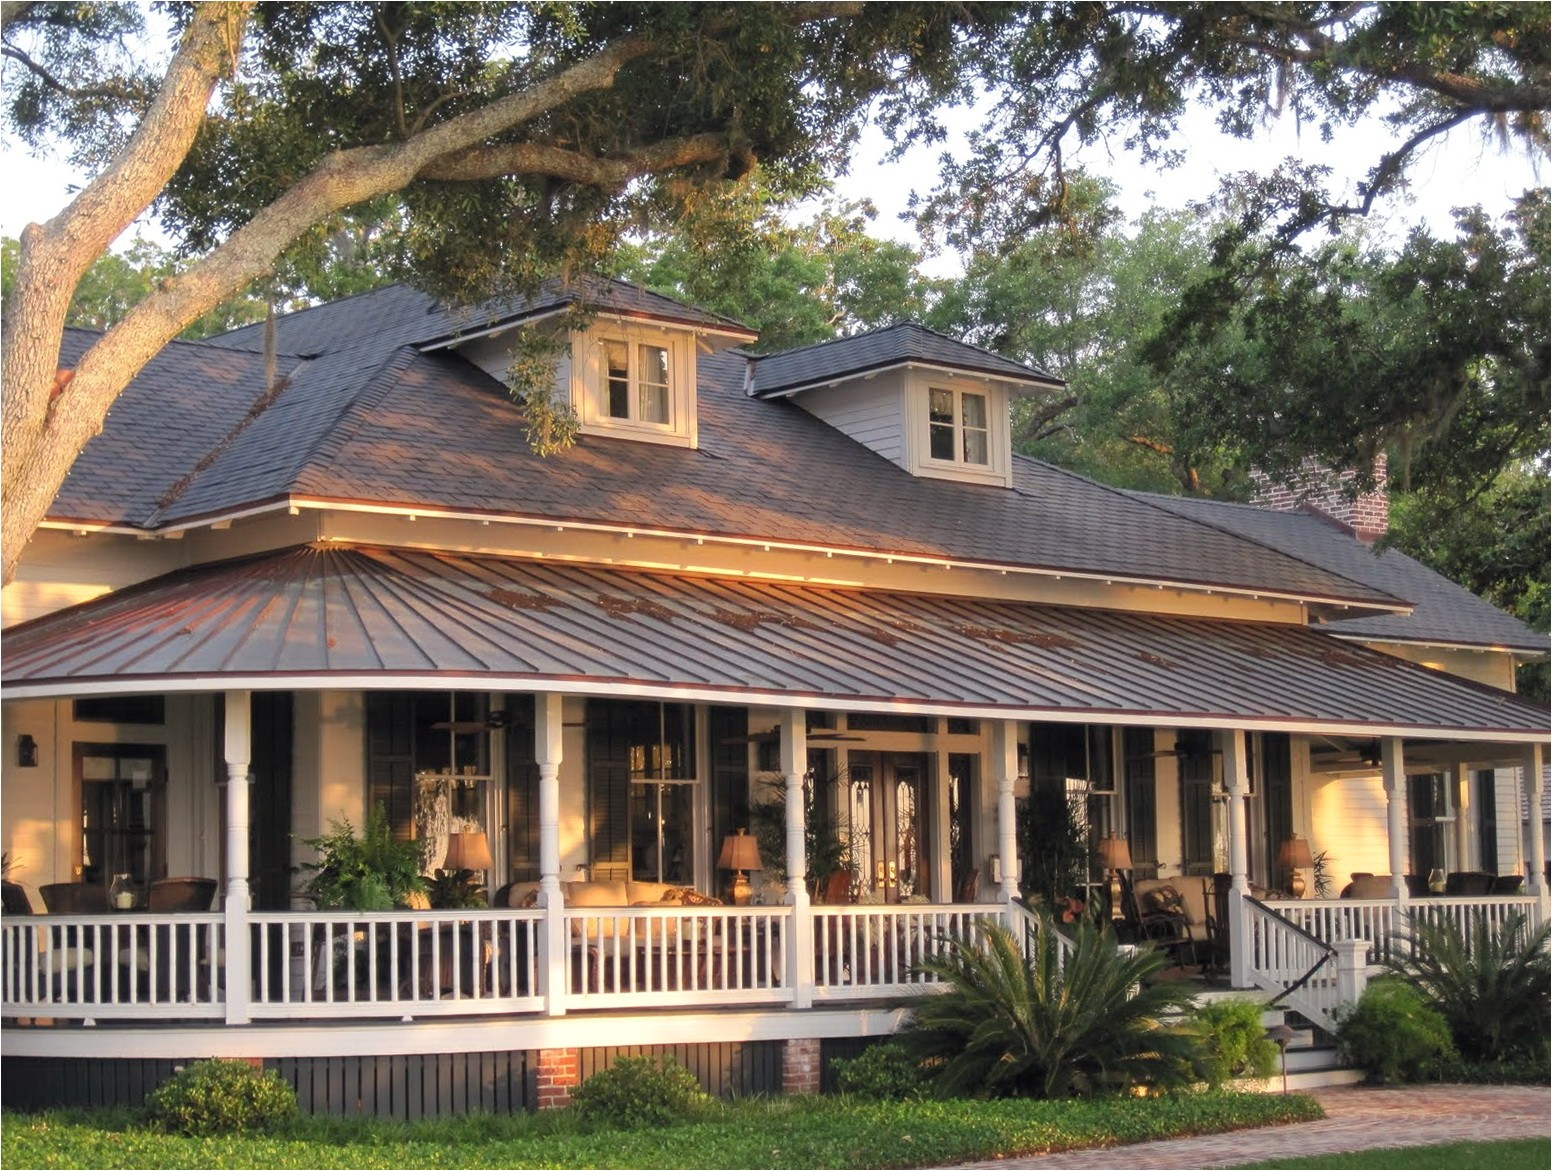 10267 house plans with porches on front and back